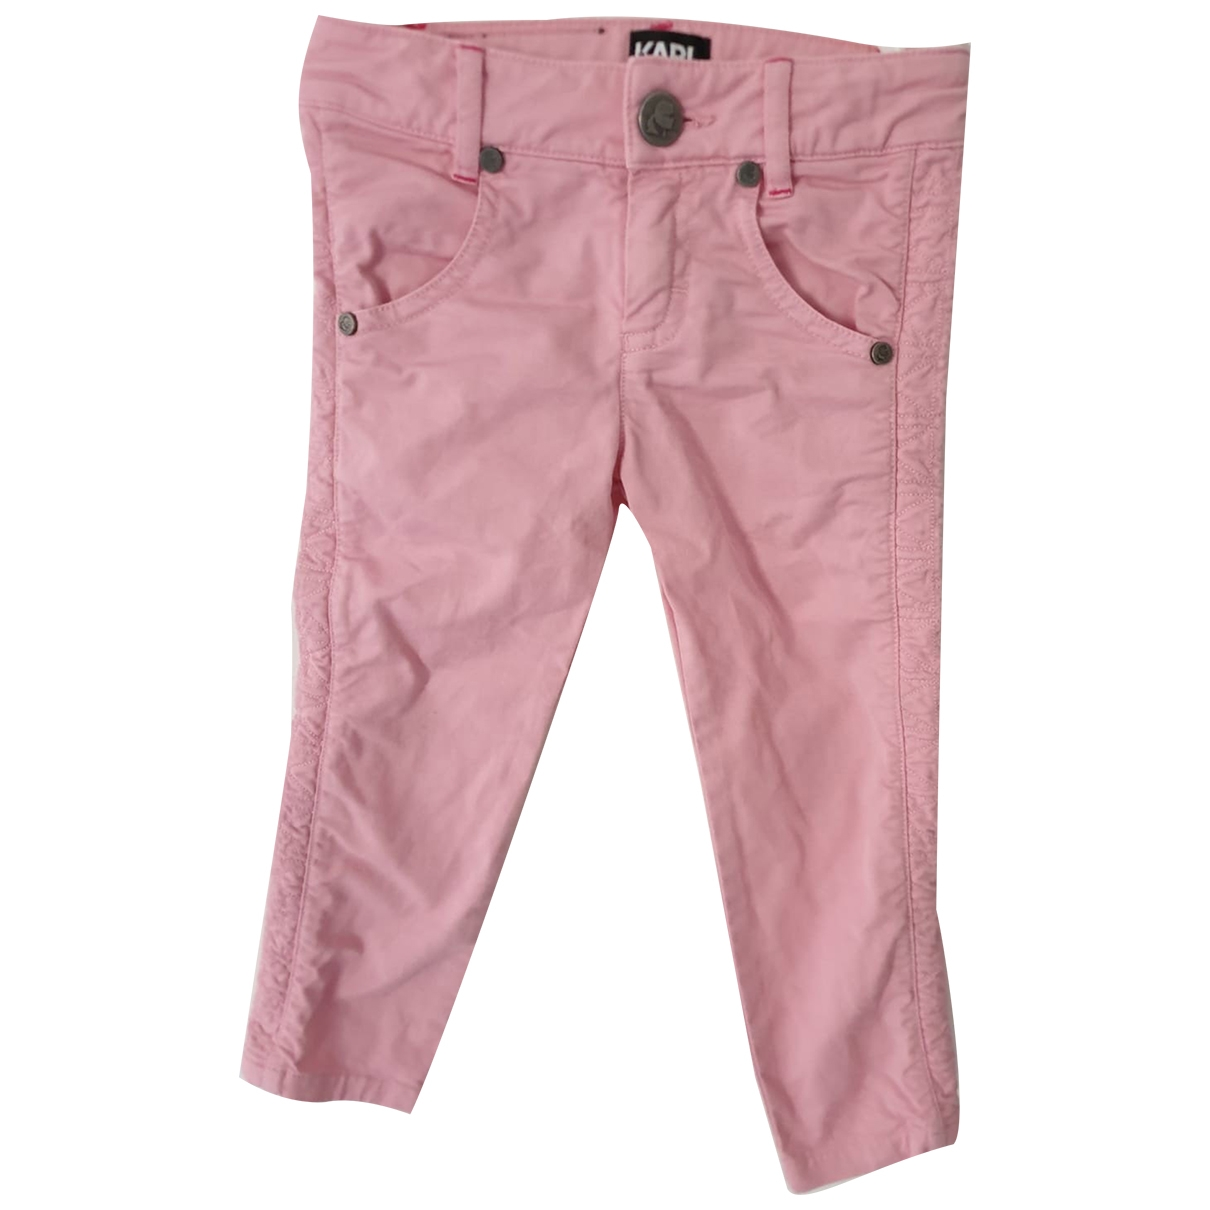 Karl Lagerfeld \N Pink Cotton Trousers for Kids 3 years - up to 98cm FR